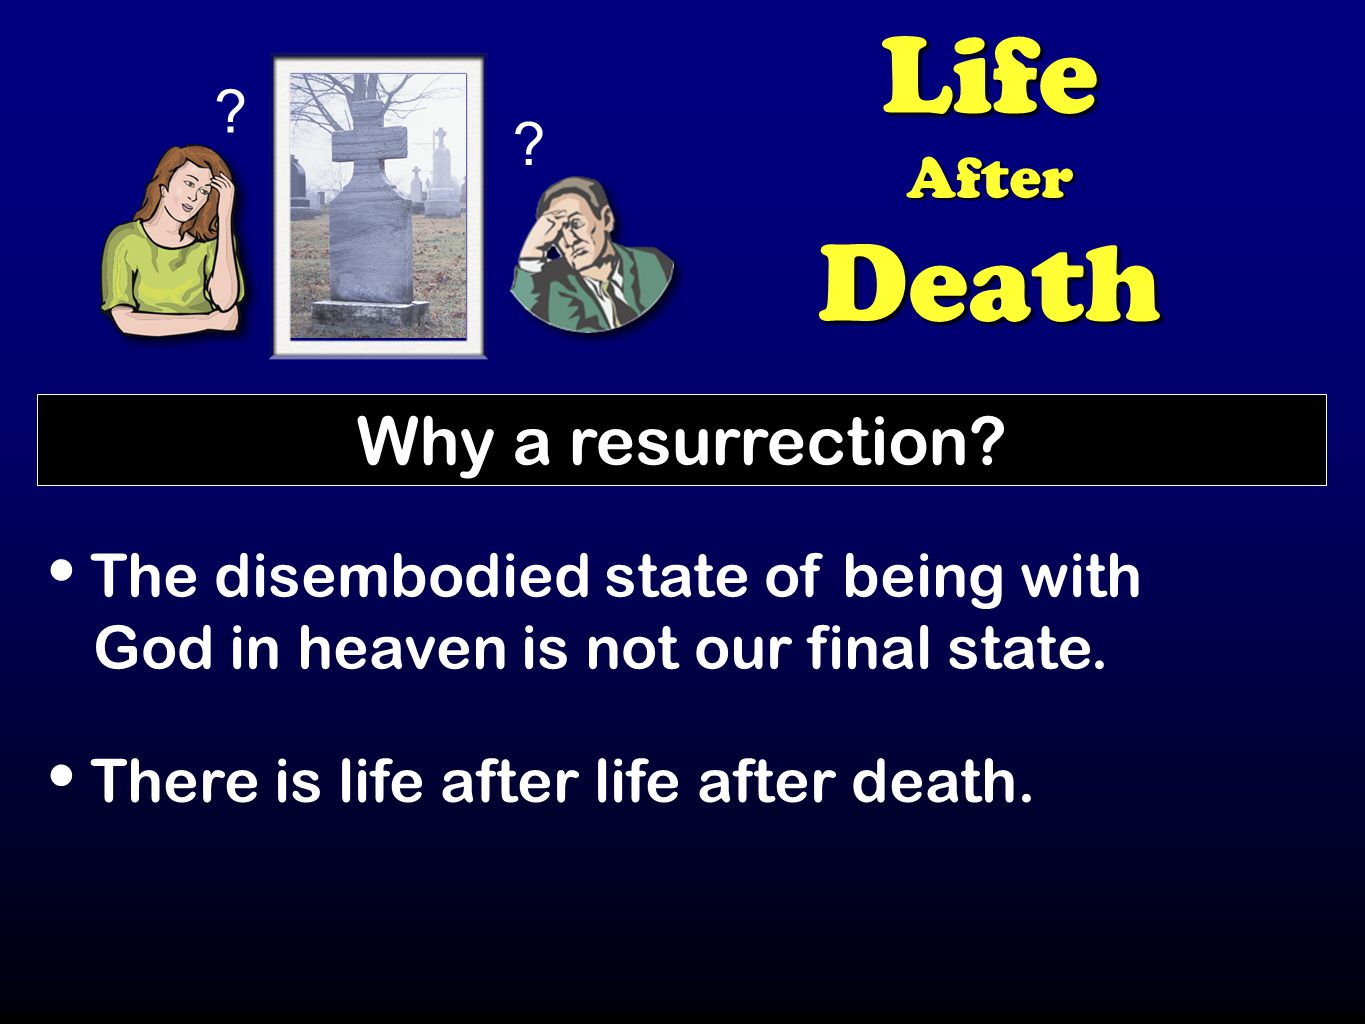 ? ? LifeAfterDeath Why a resurrection? The disembodied state of being with God in heaven is not our final state. There is life after life after death.